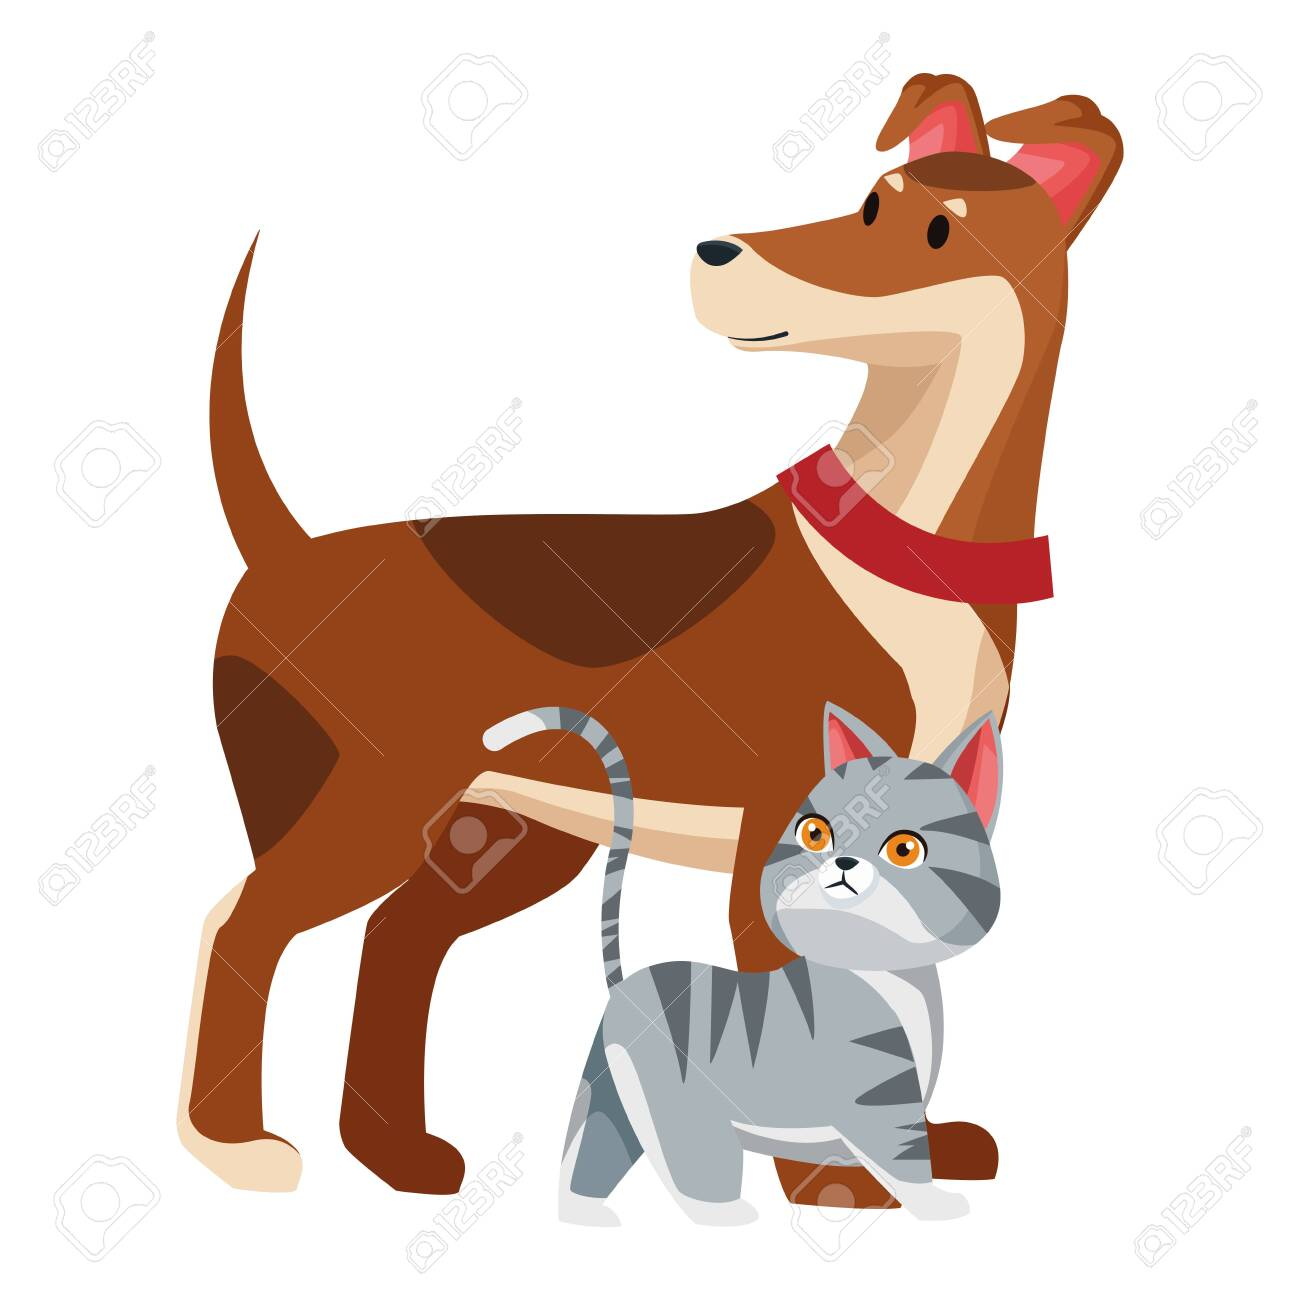 Domestic Animals And Pet With Dog And Cat Icon Cartoon Vector